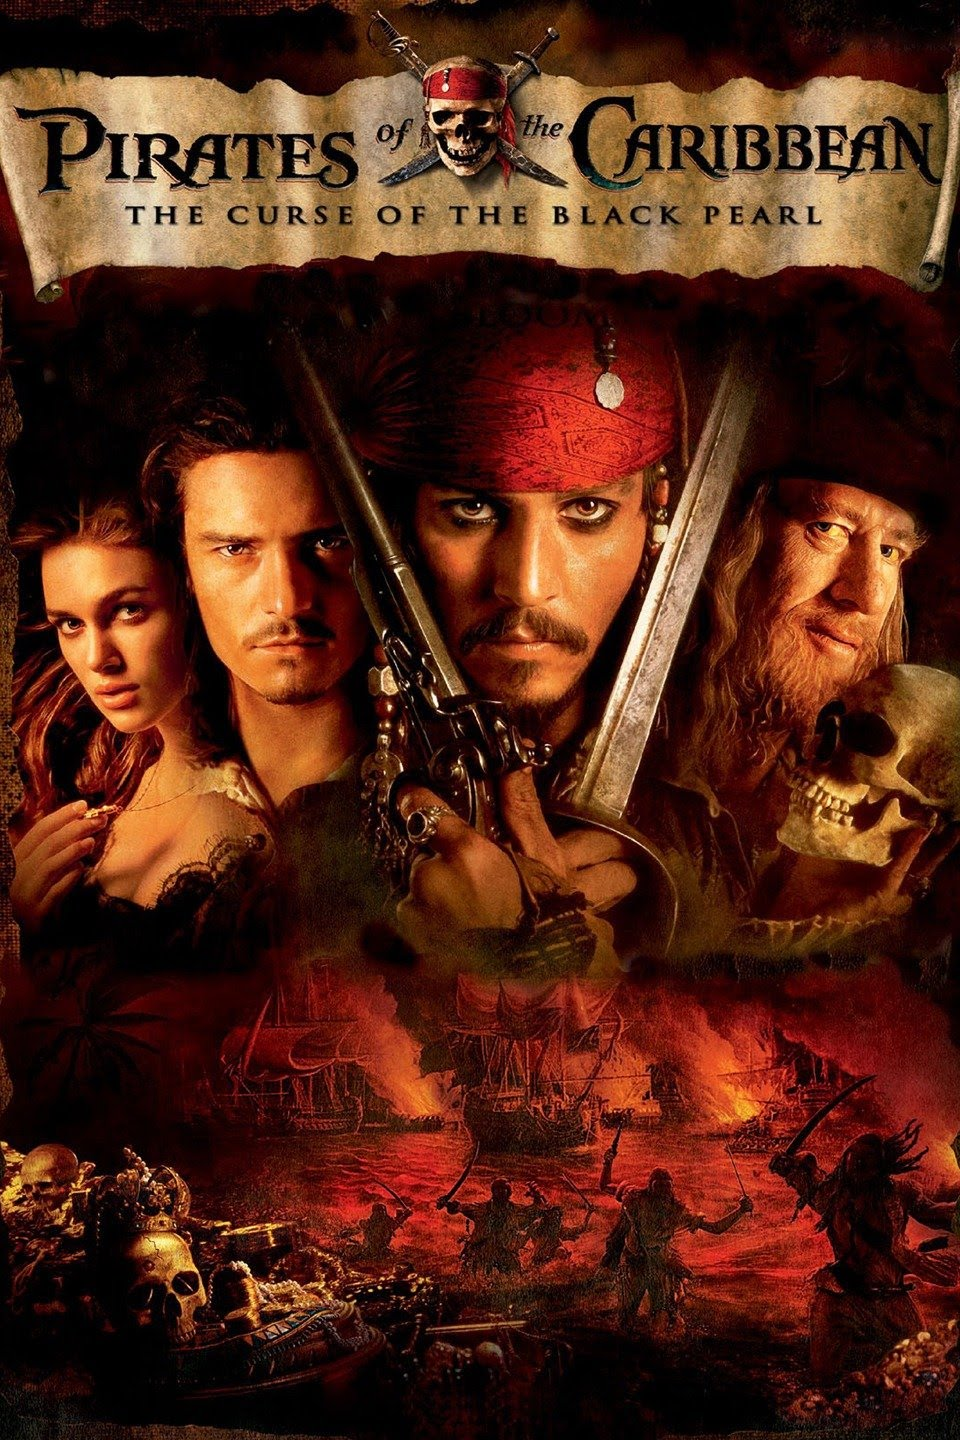 Pirates of the Caribbean 1 2003 Cut